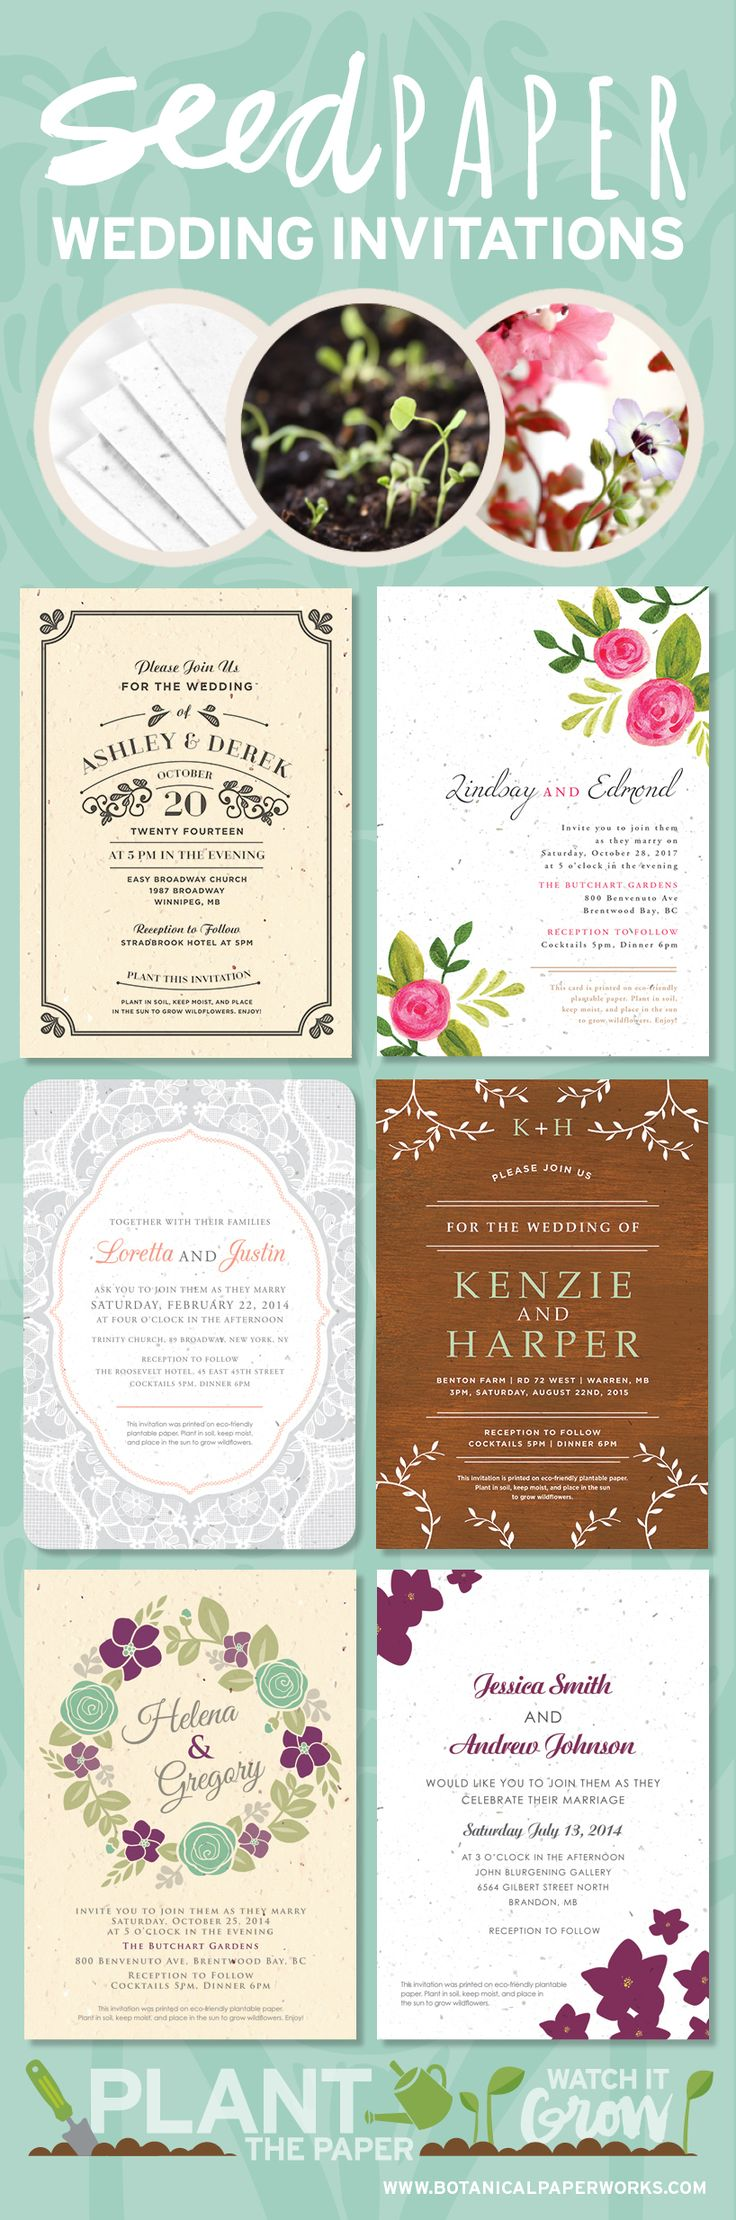 Plantable wedding favors - Beautiful Eco Friendly Plantable Wedding Invitations Grow Flowers And Herbs When You Plant Them Grow Beauty Leave No Waste With Seed Paper Invitations